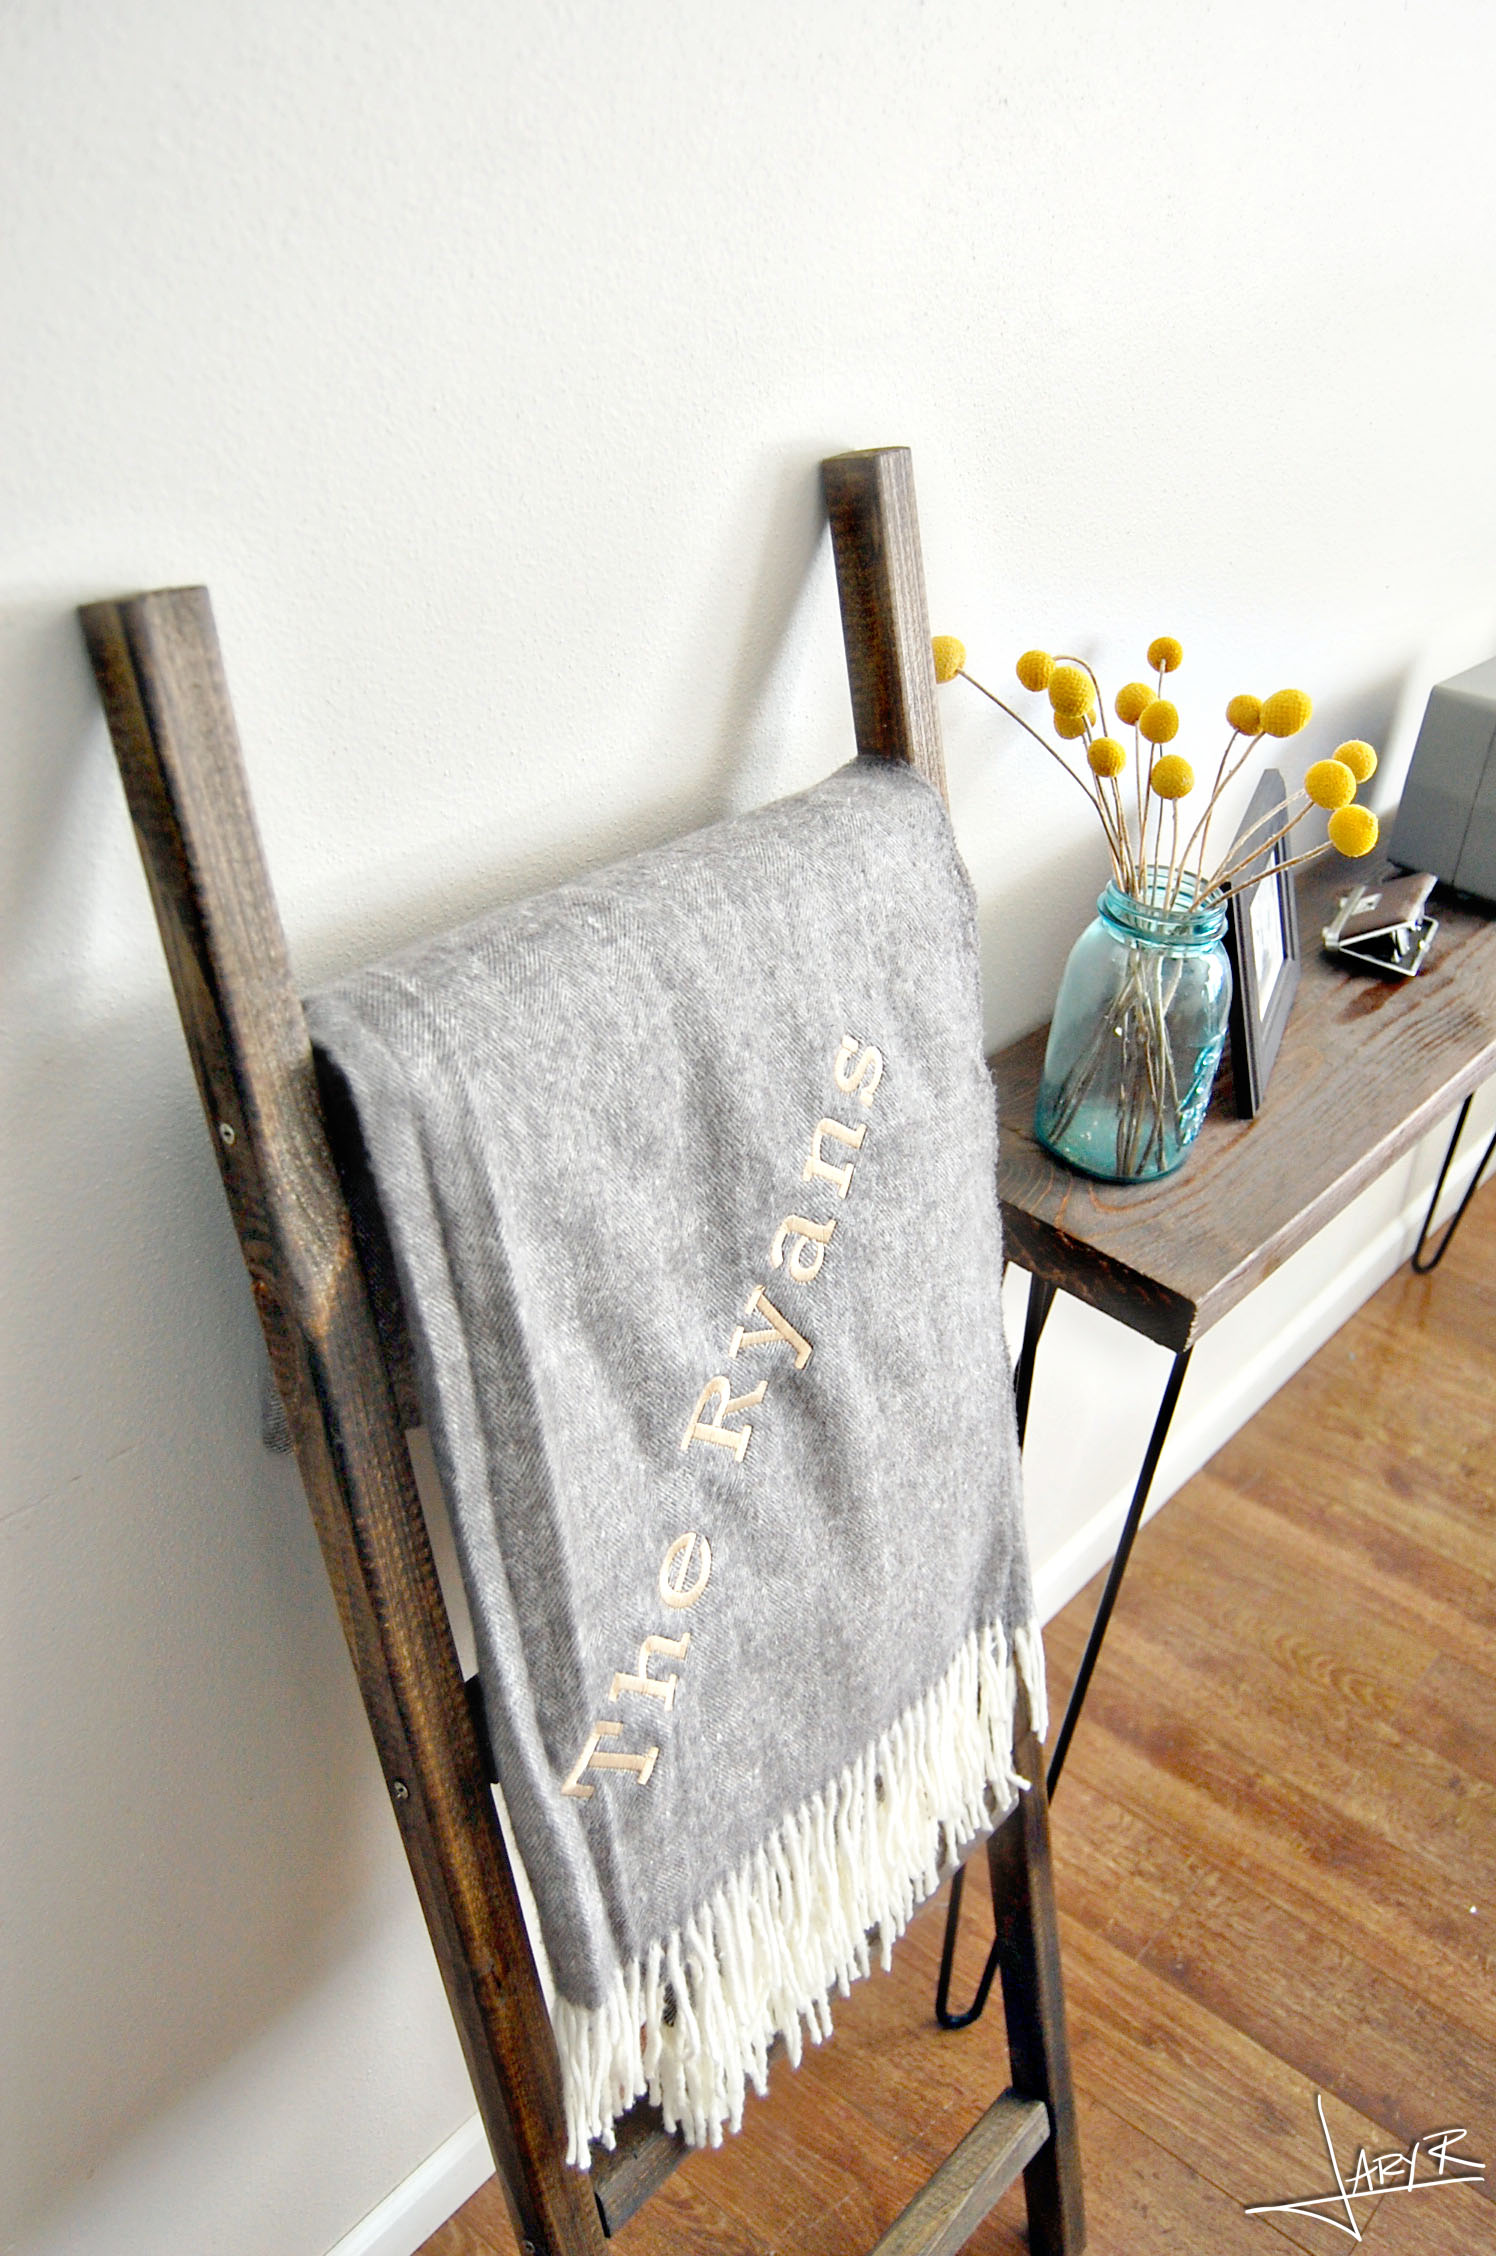 Blanket Ladder DIY - Tiny Prints Blanket